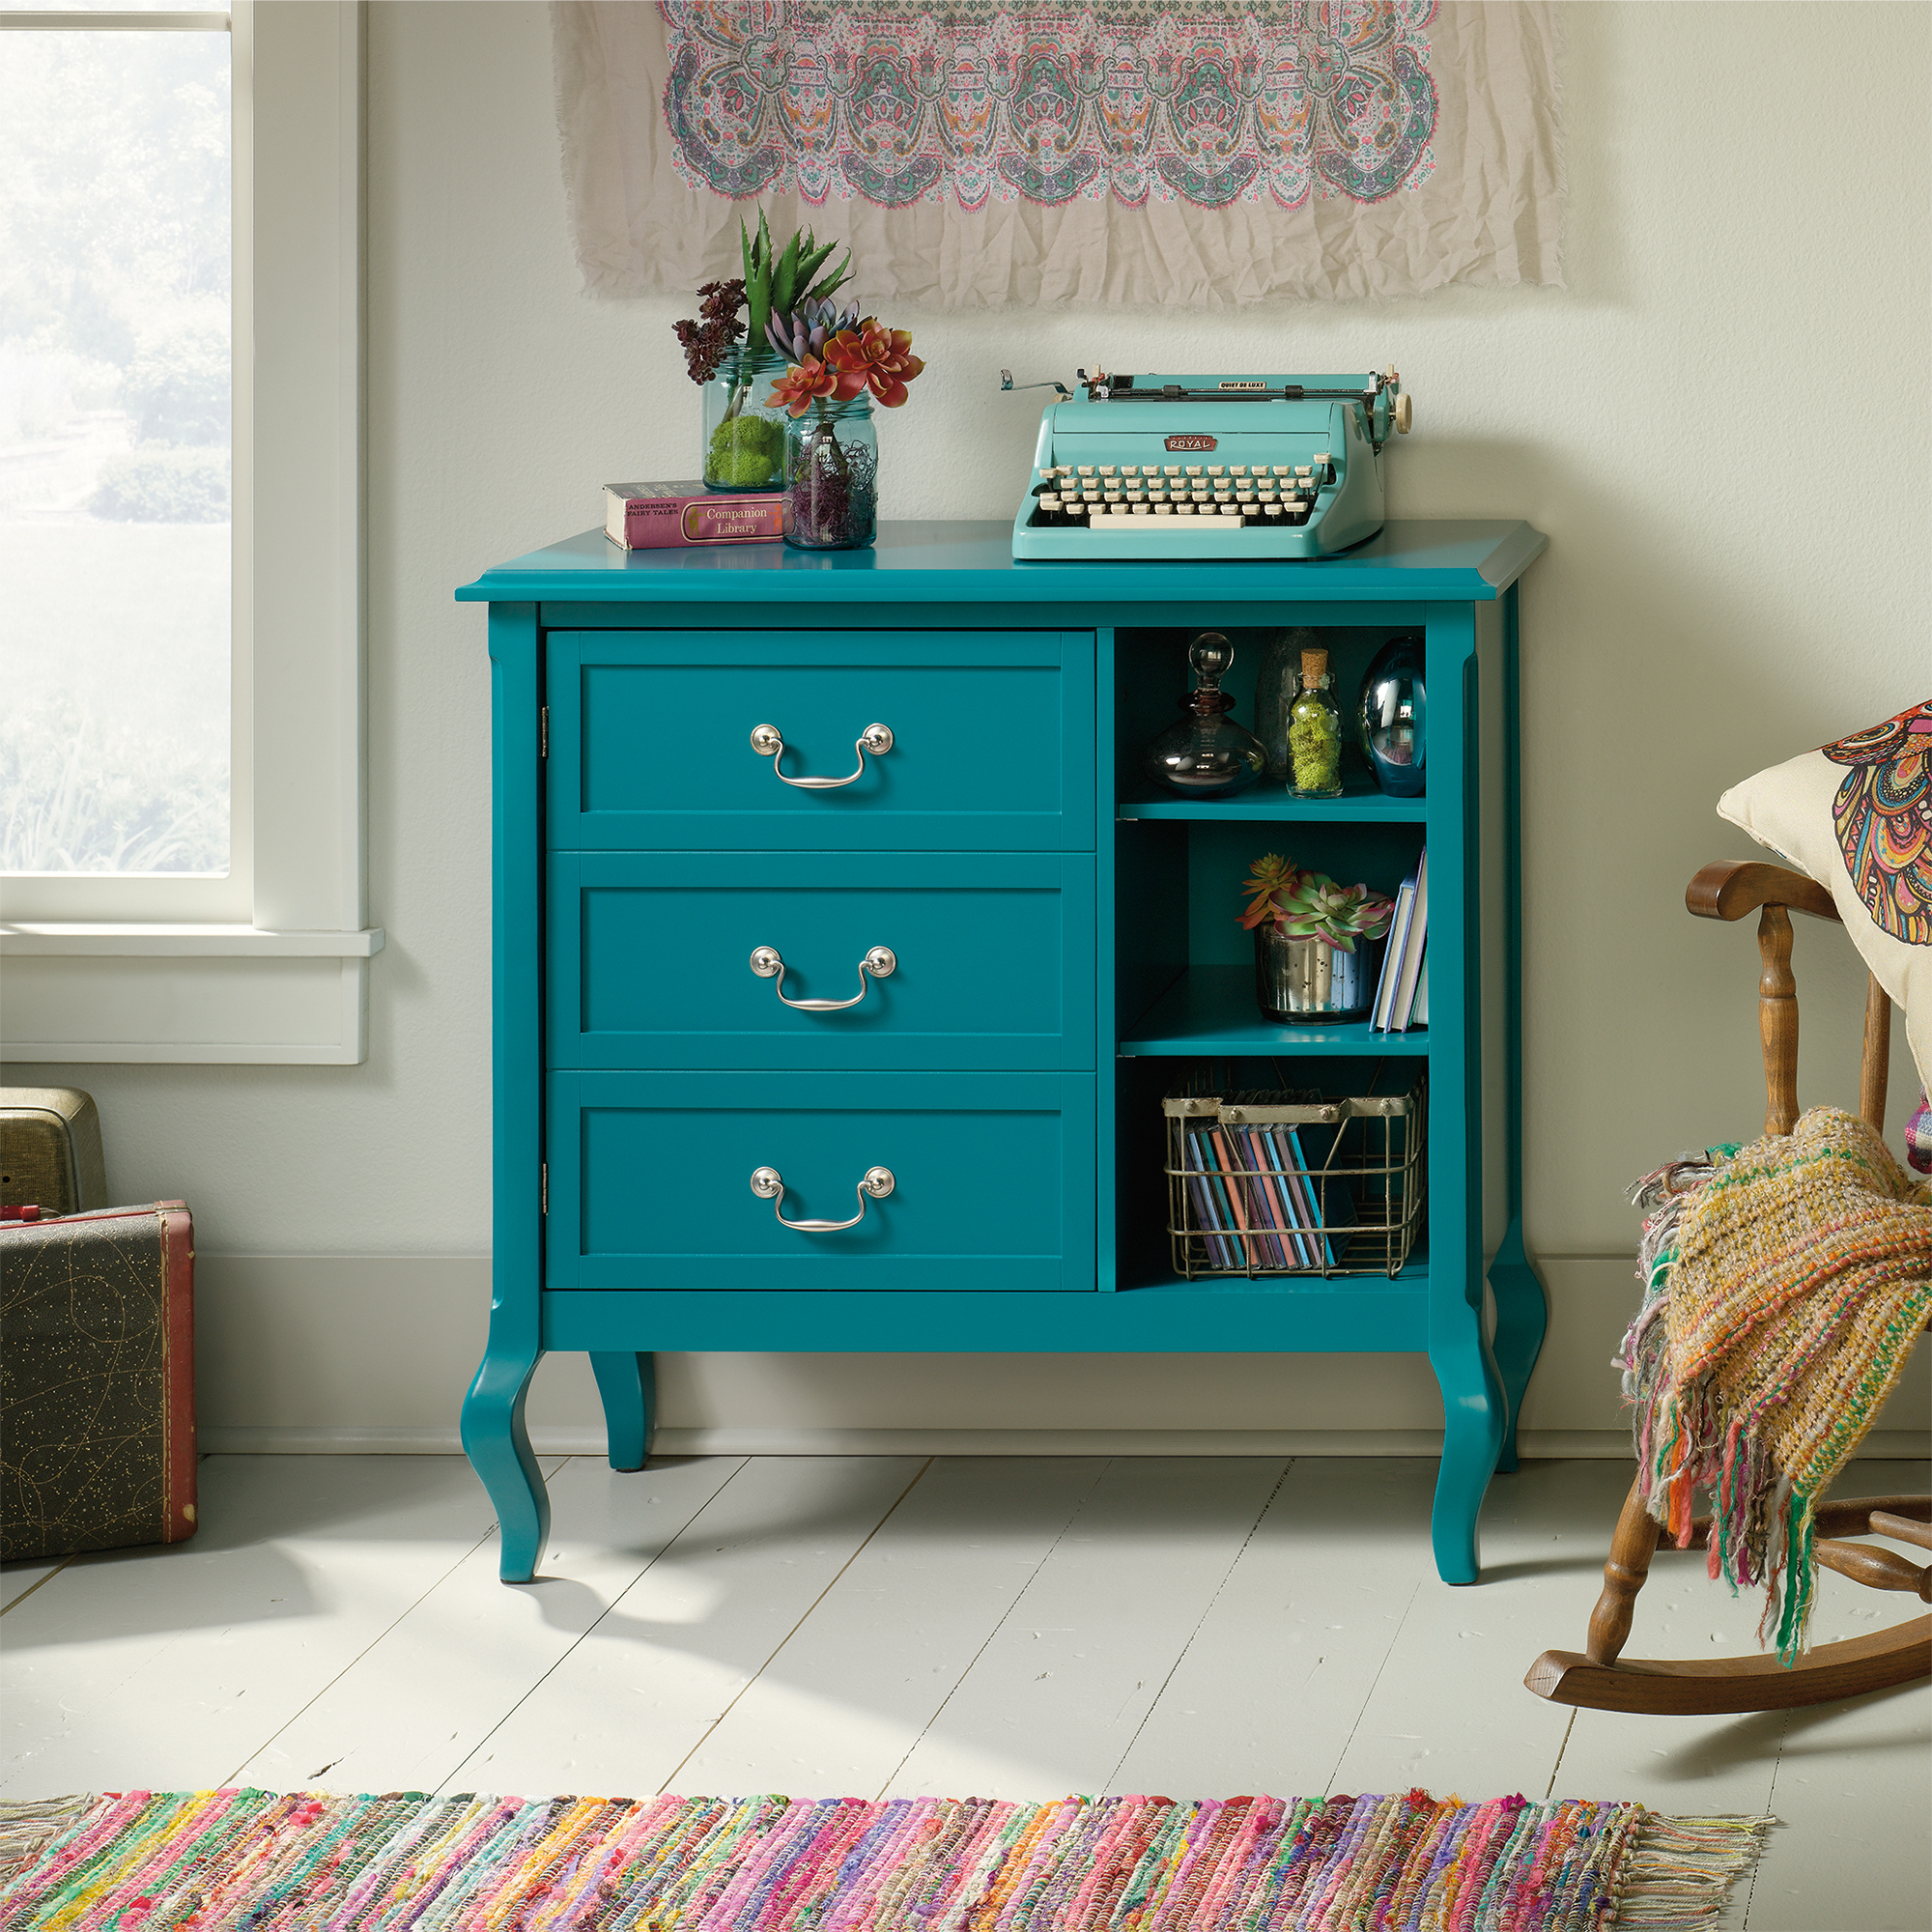 eden rue accent storage cabinet sauder tables and cabinets end with built tory burch bracelet circle table slim side furniture pottery barn square coffee brown bedside threshold